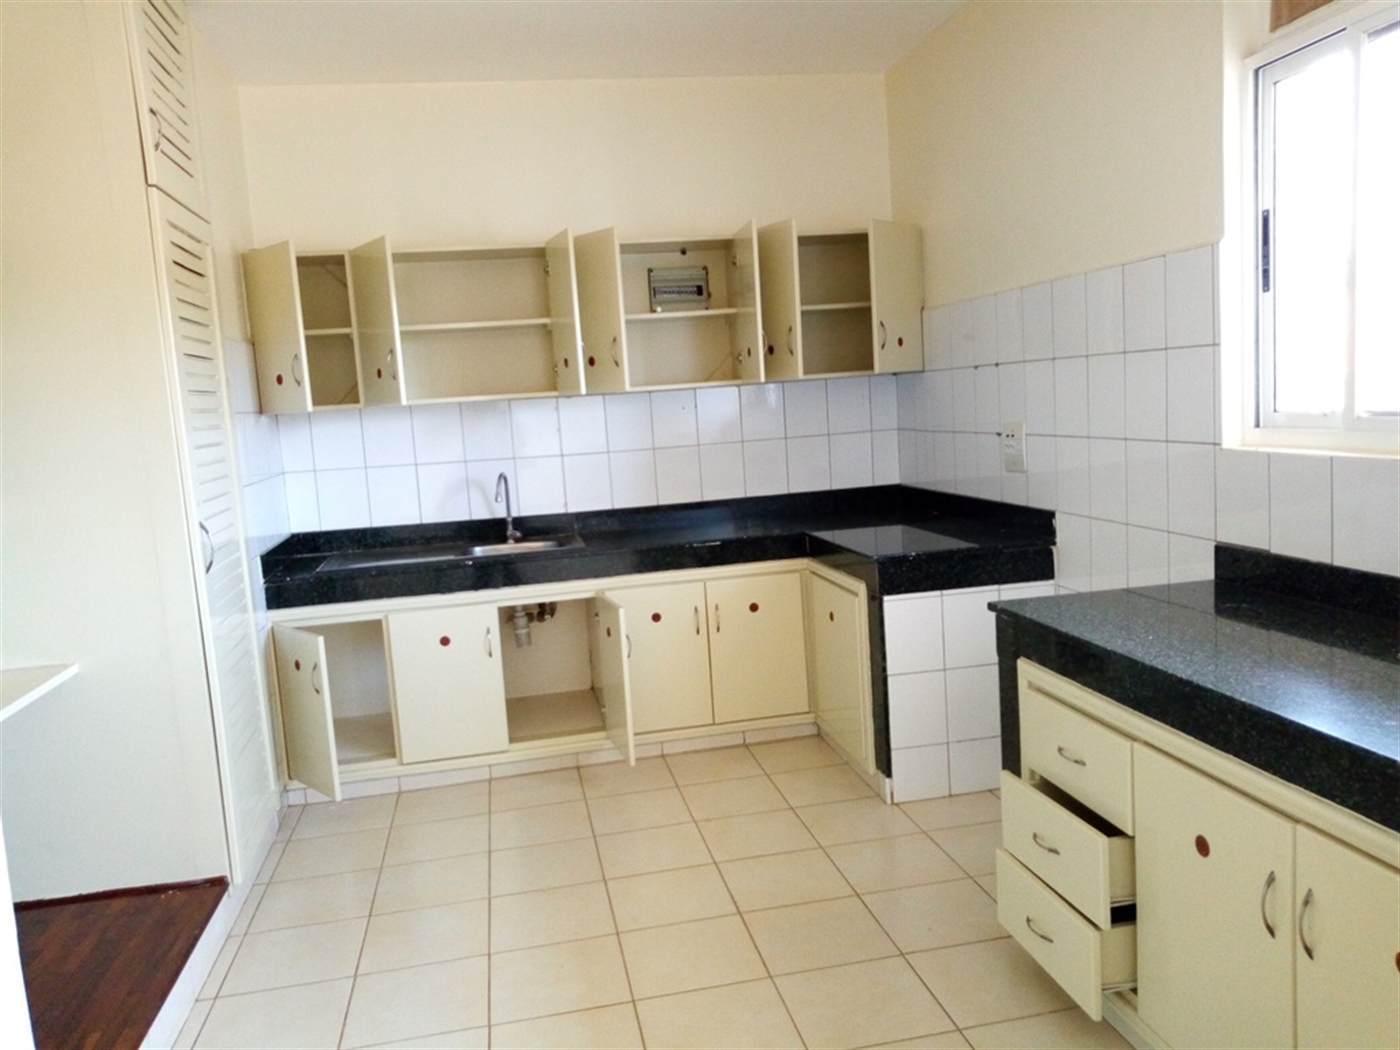 Apartment for rent in Kibuli Kampala